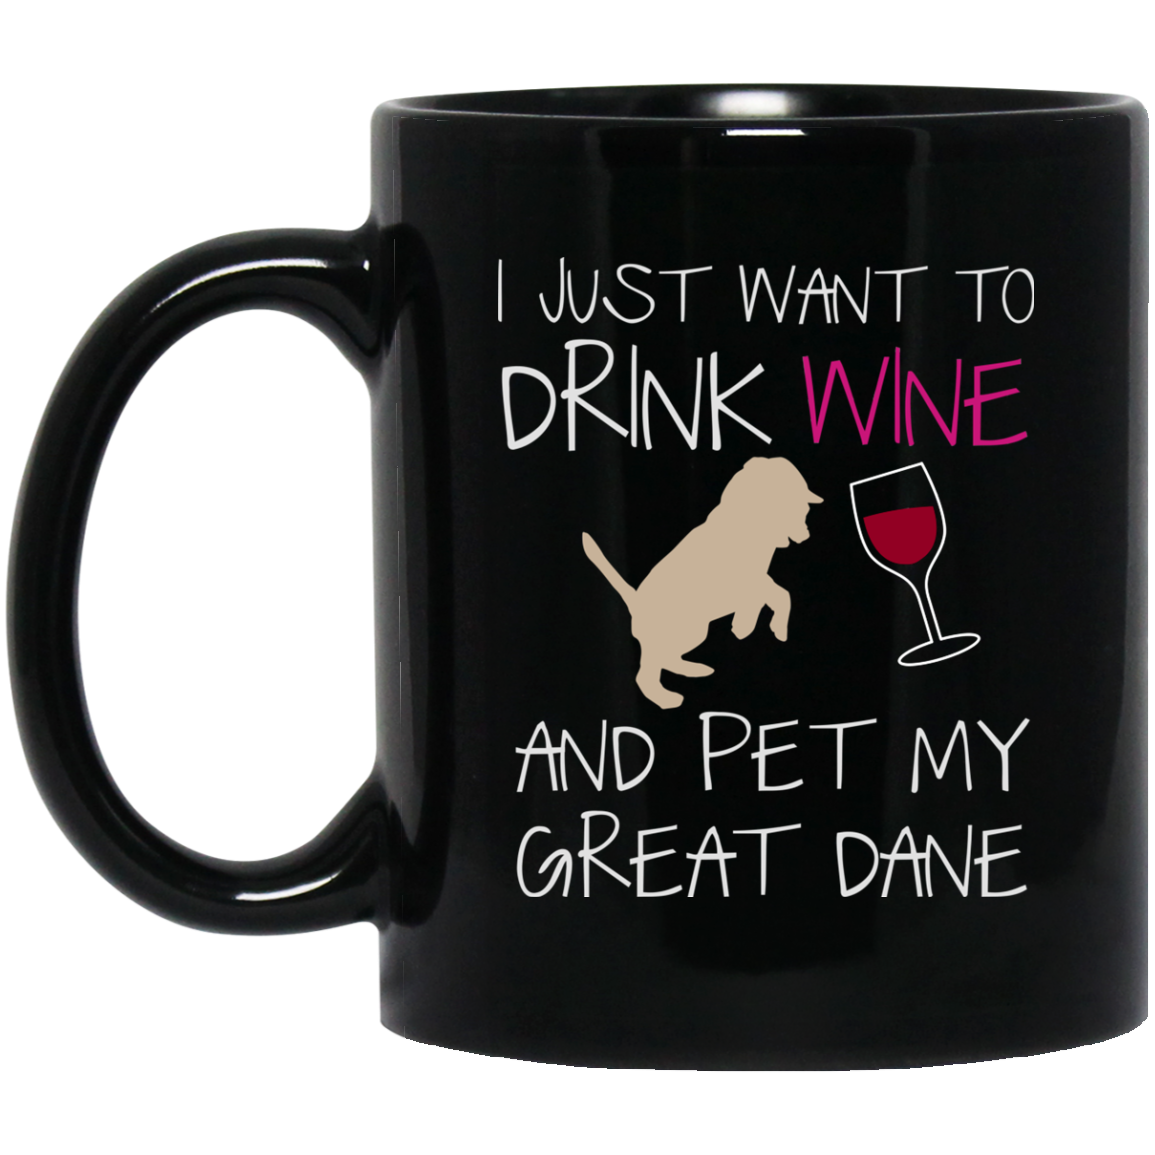 Great Dane Mugdrink Wine And Pet My Dog